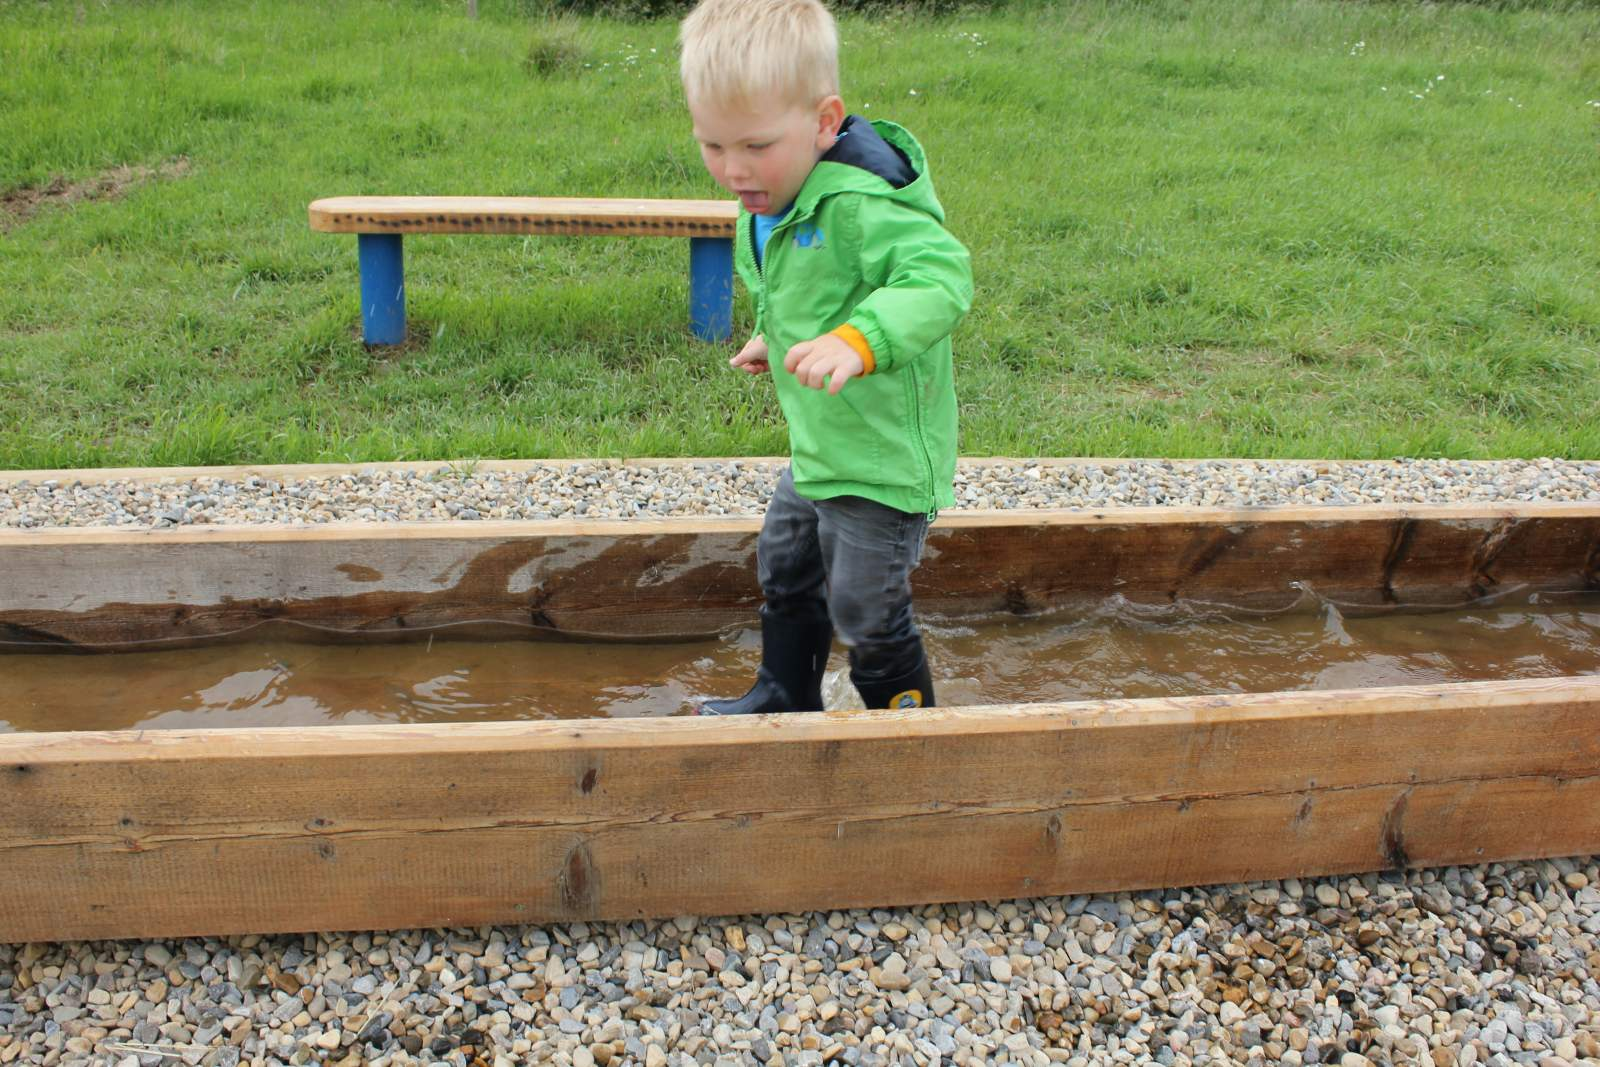 rspb saltholme water play area